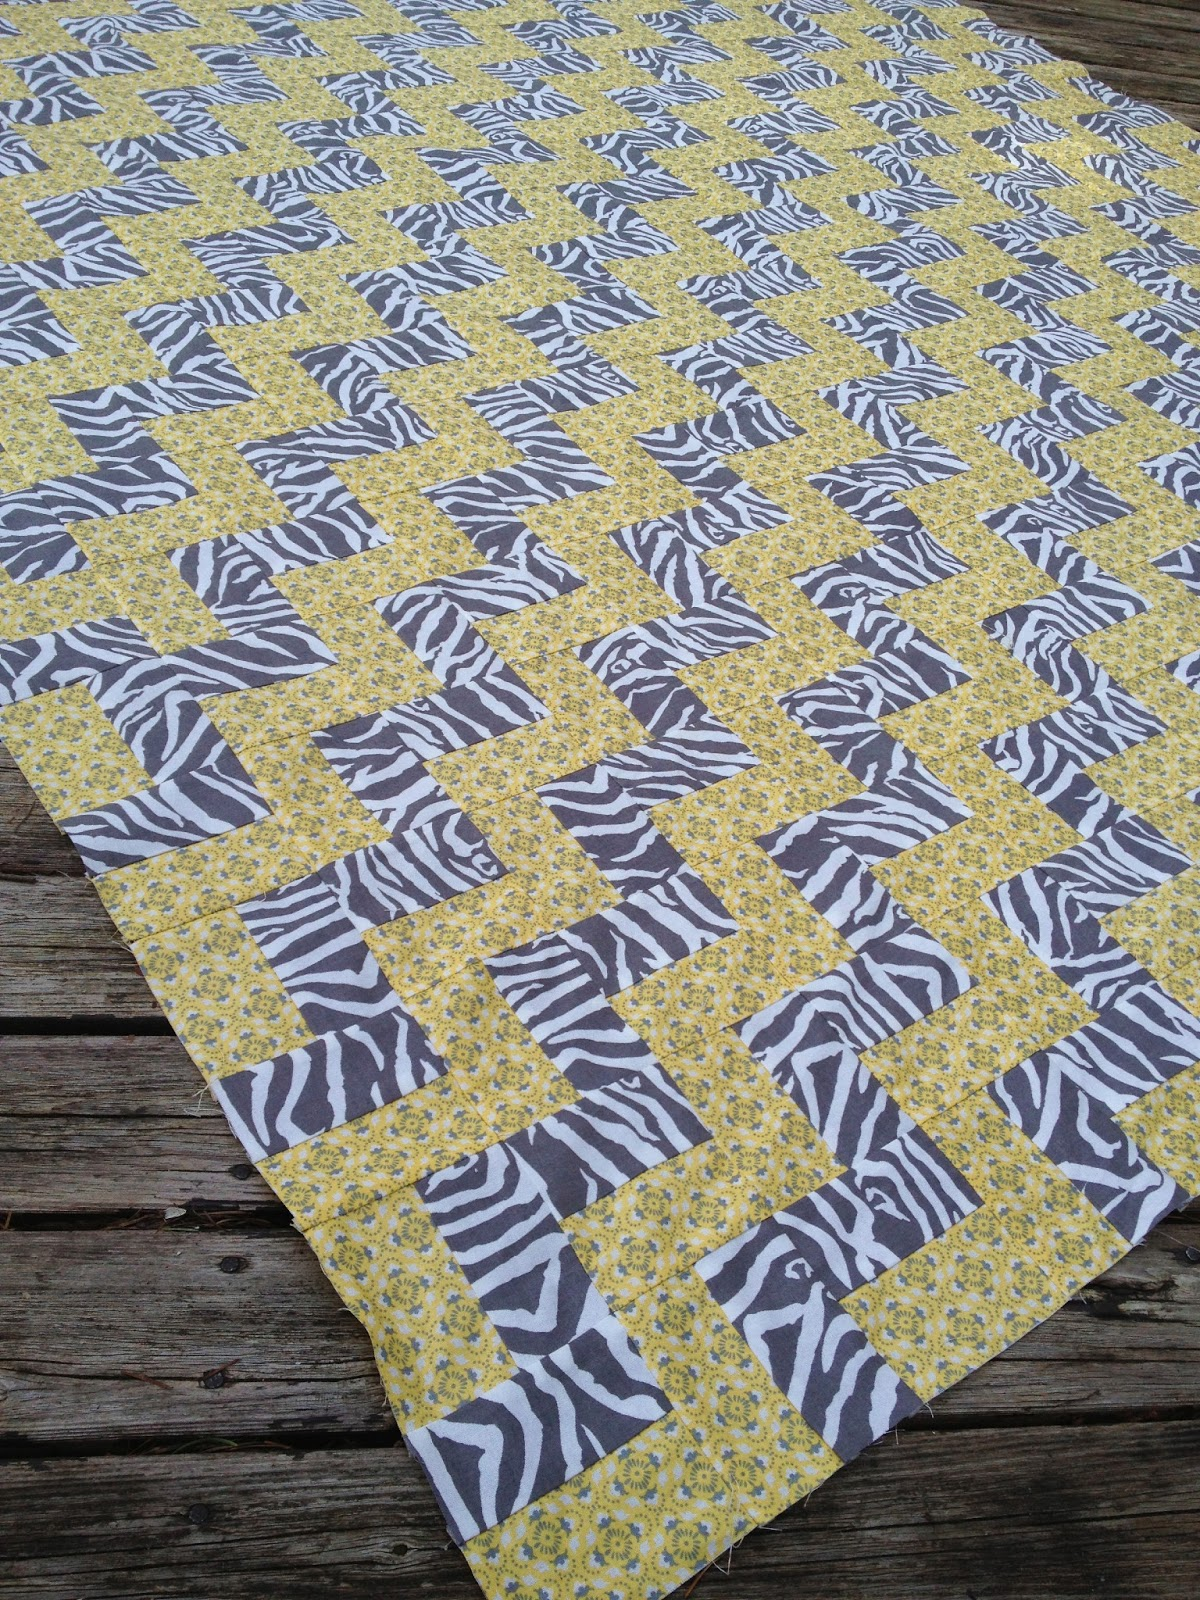 Schnitzel & Boo: Tutorial: Step-Up Zig Zag Quilt